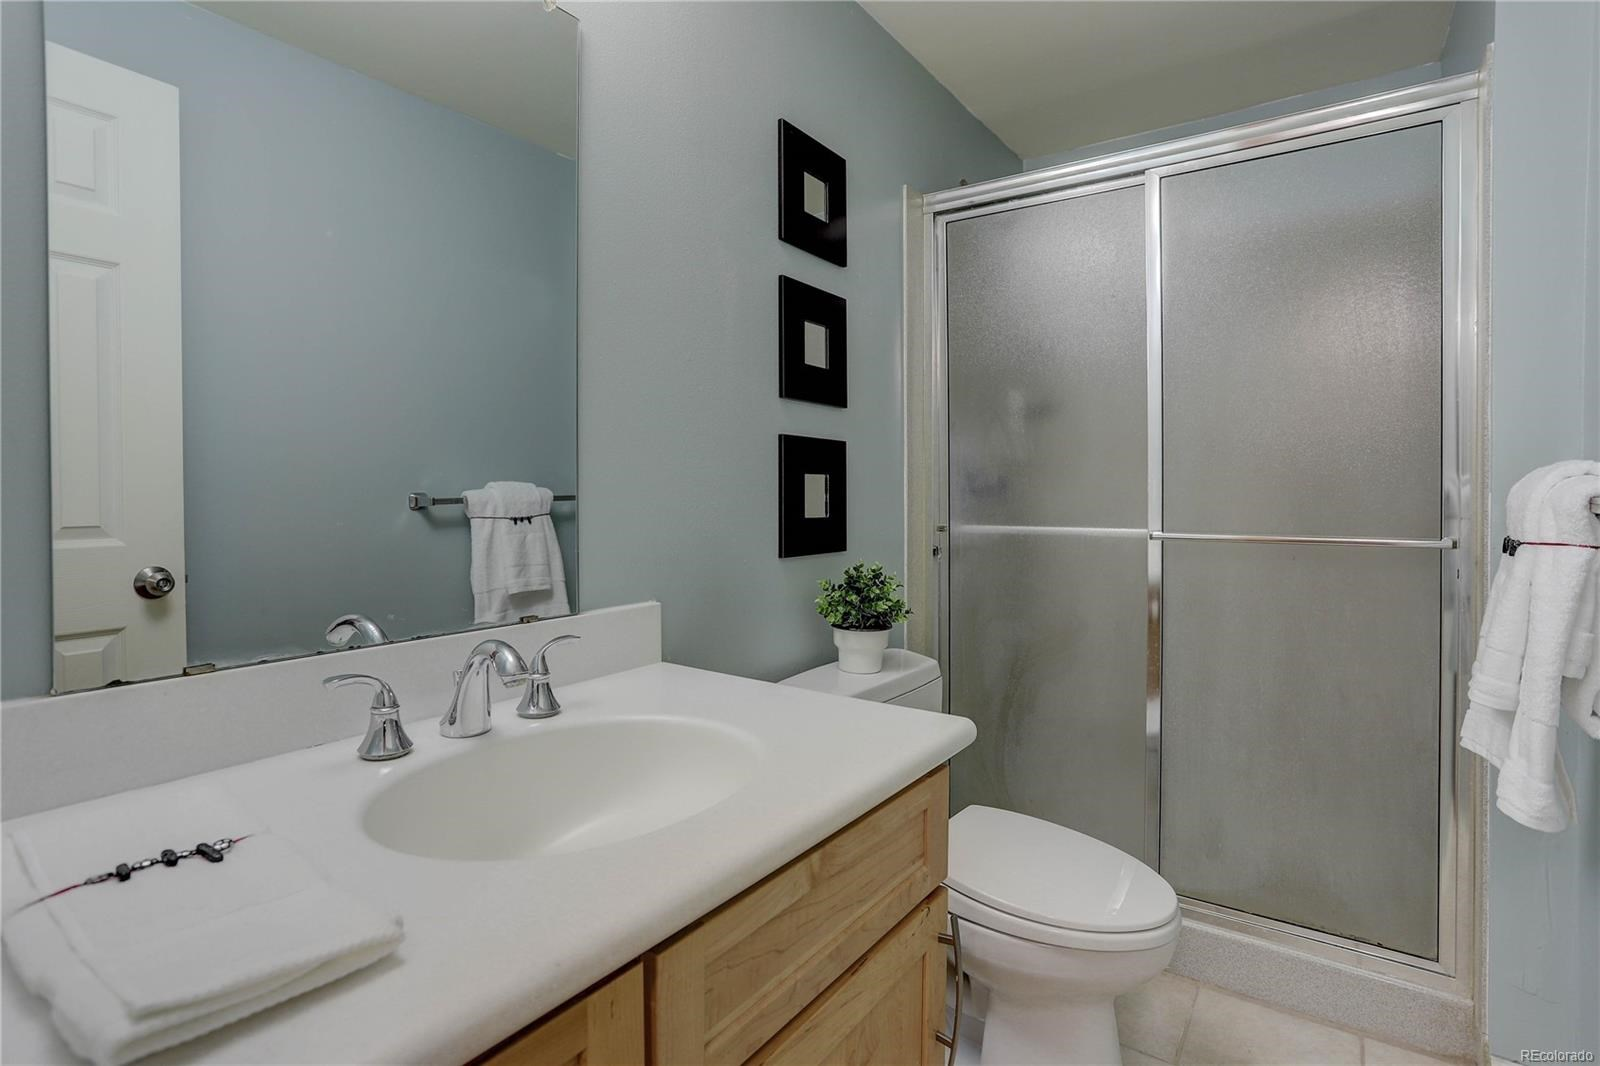 MLS# 2968148 - 33 - 2931 S Downing Street, Englewood, CO 80113